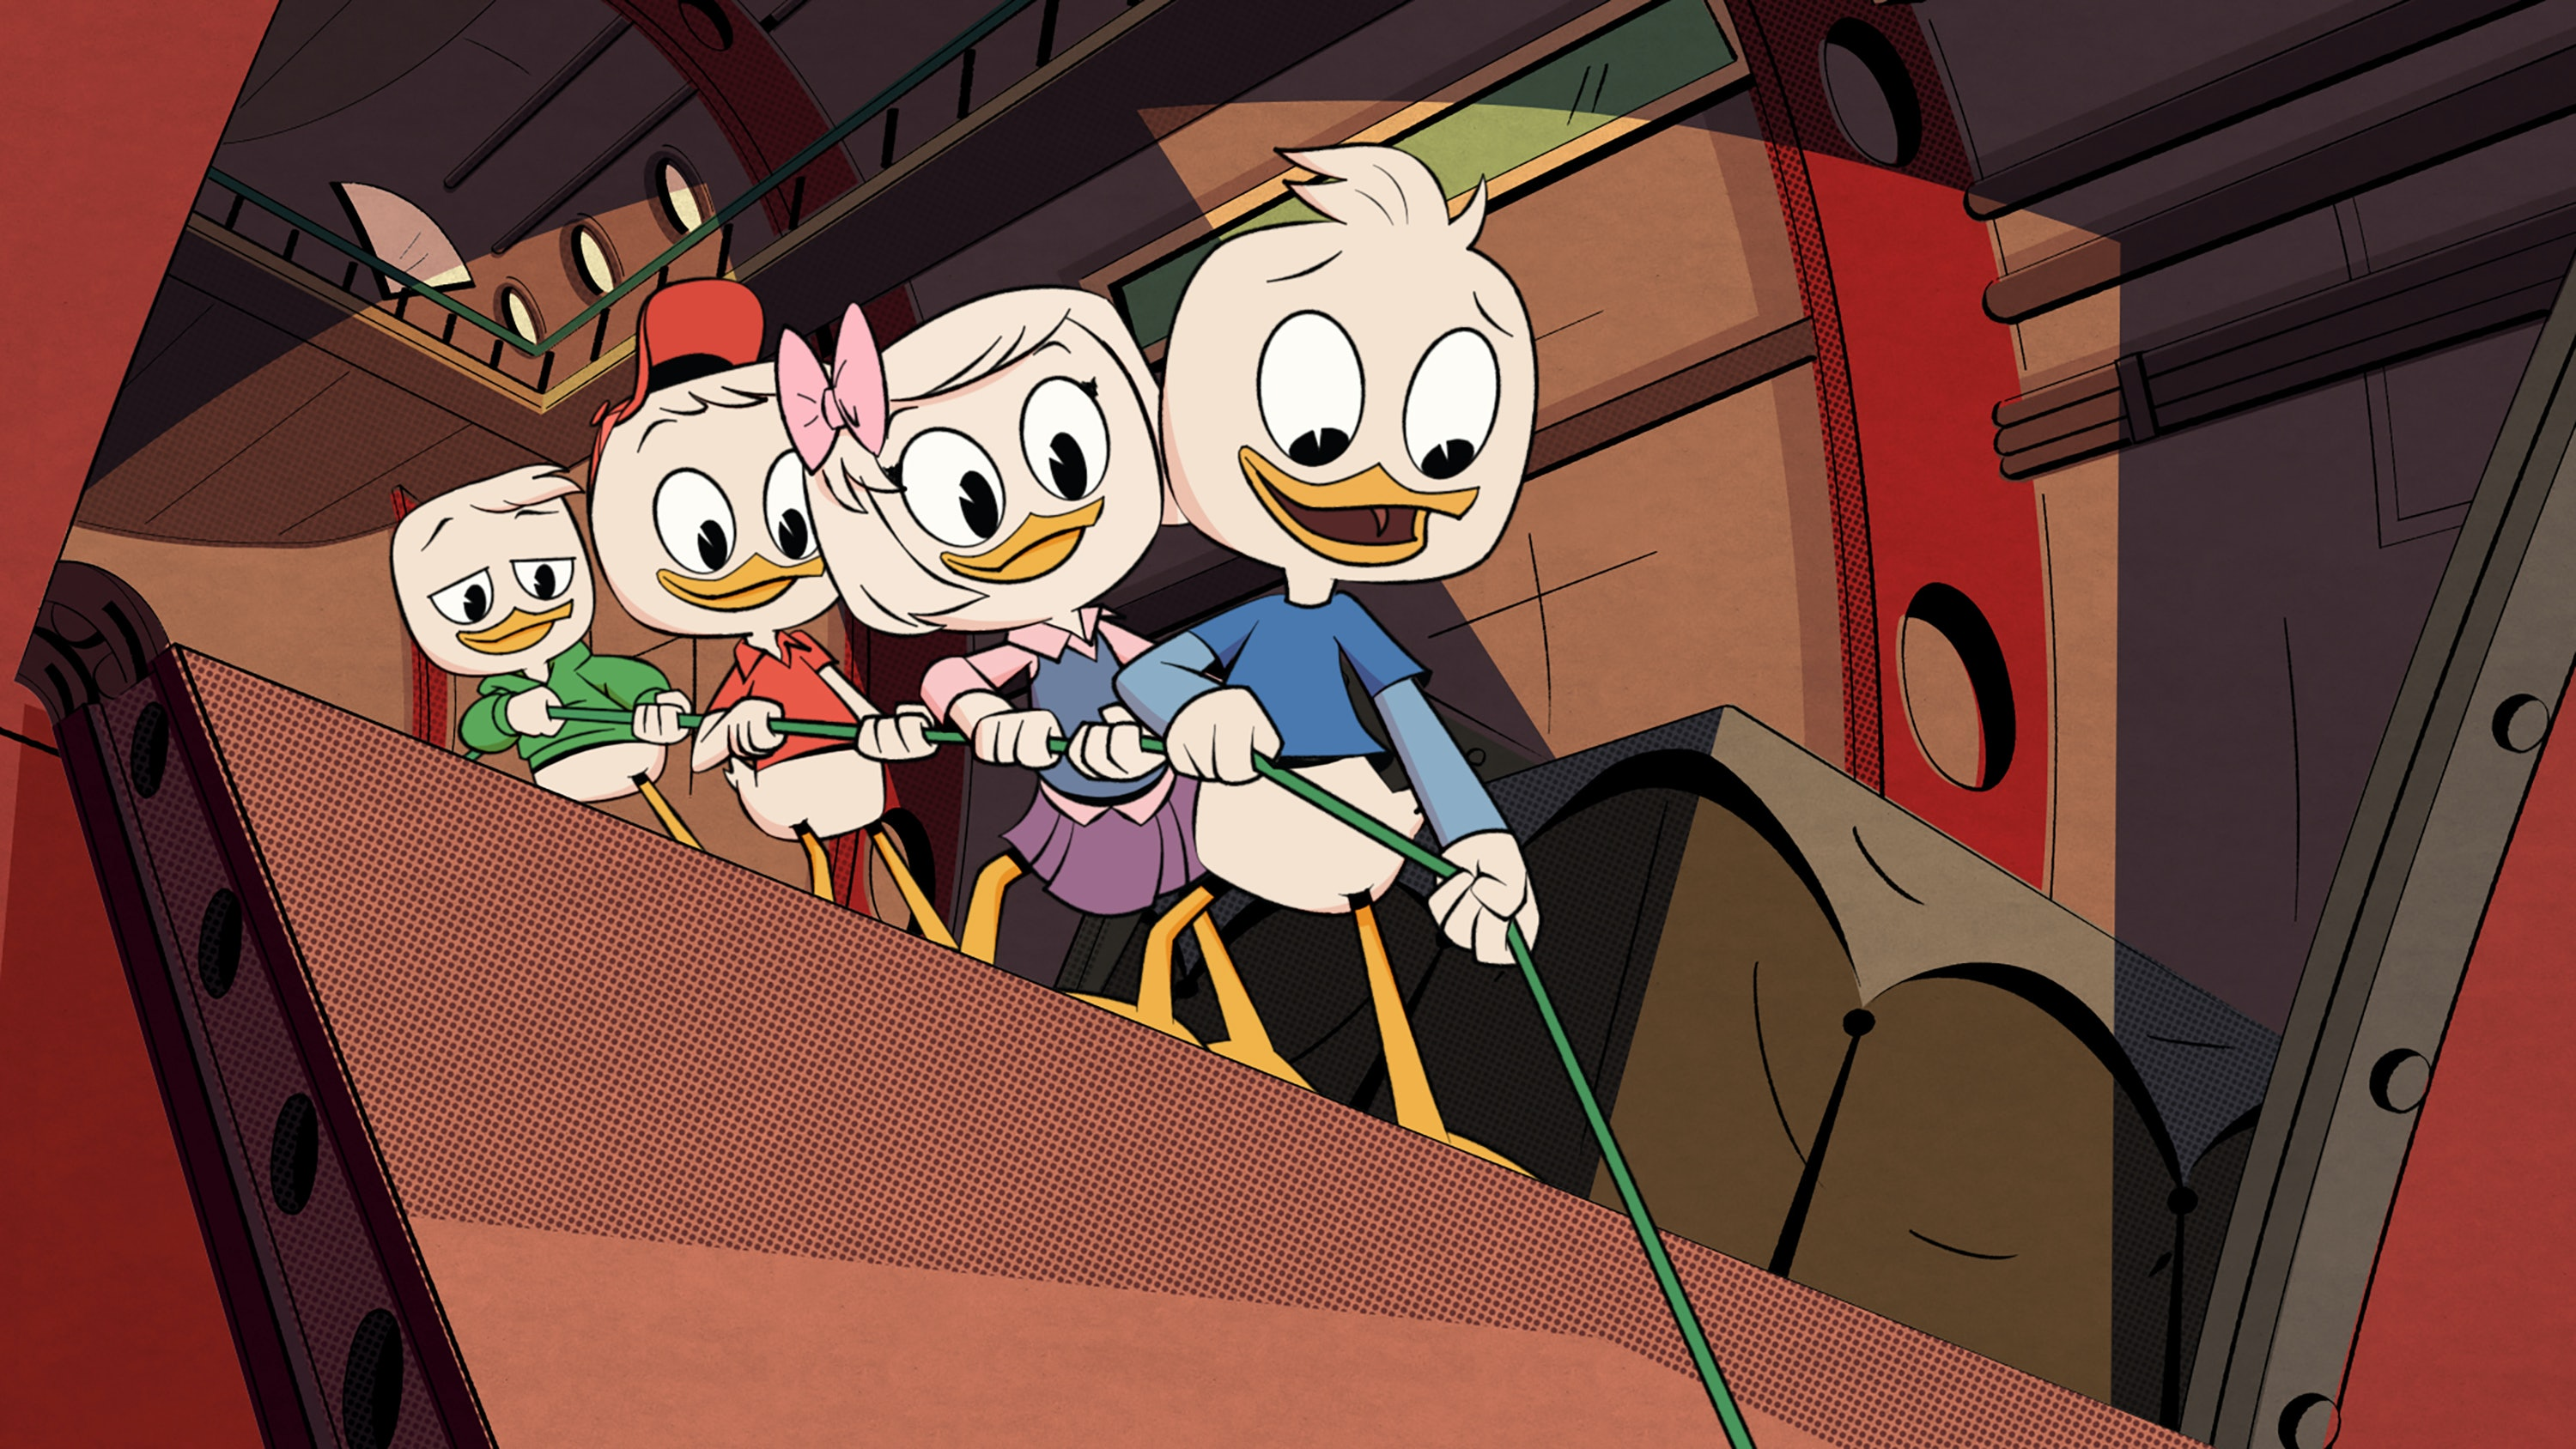 Webby Vanderquack Has A Bigger Role In The 'DuckTales